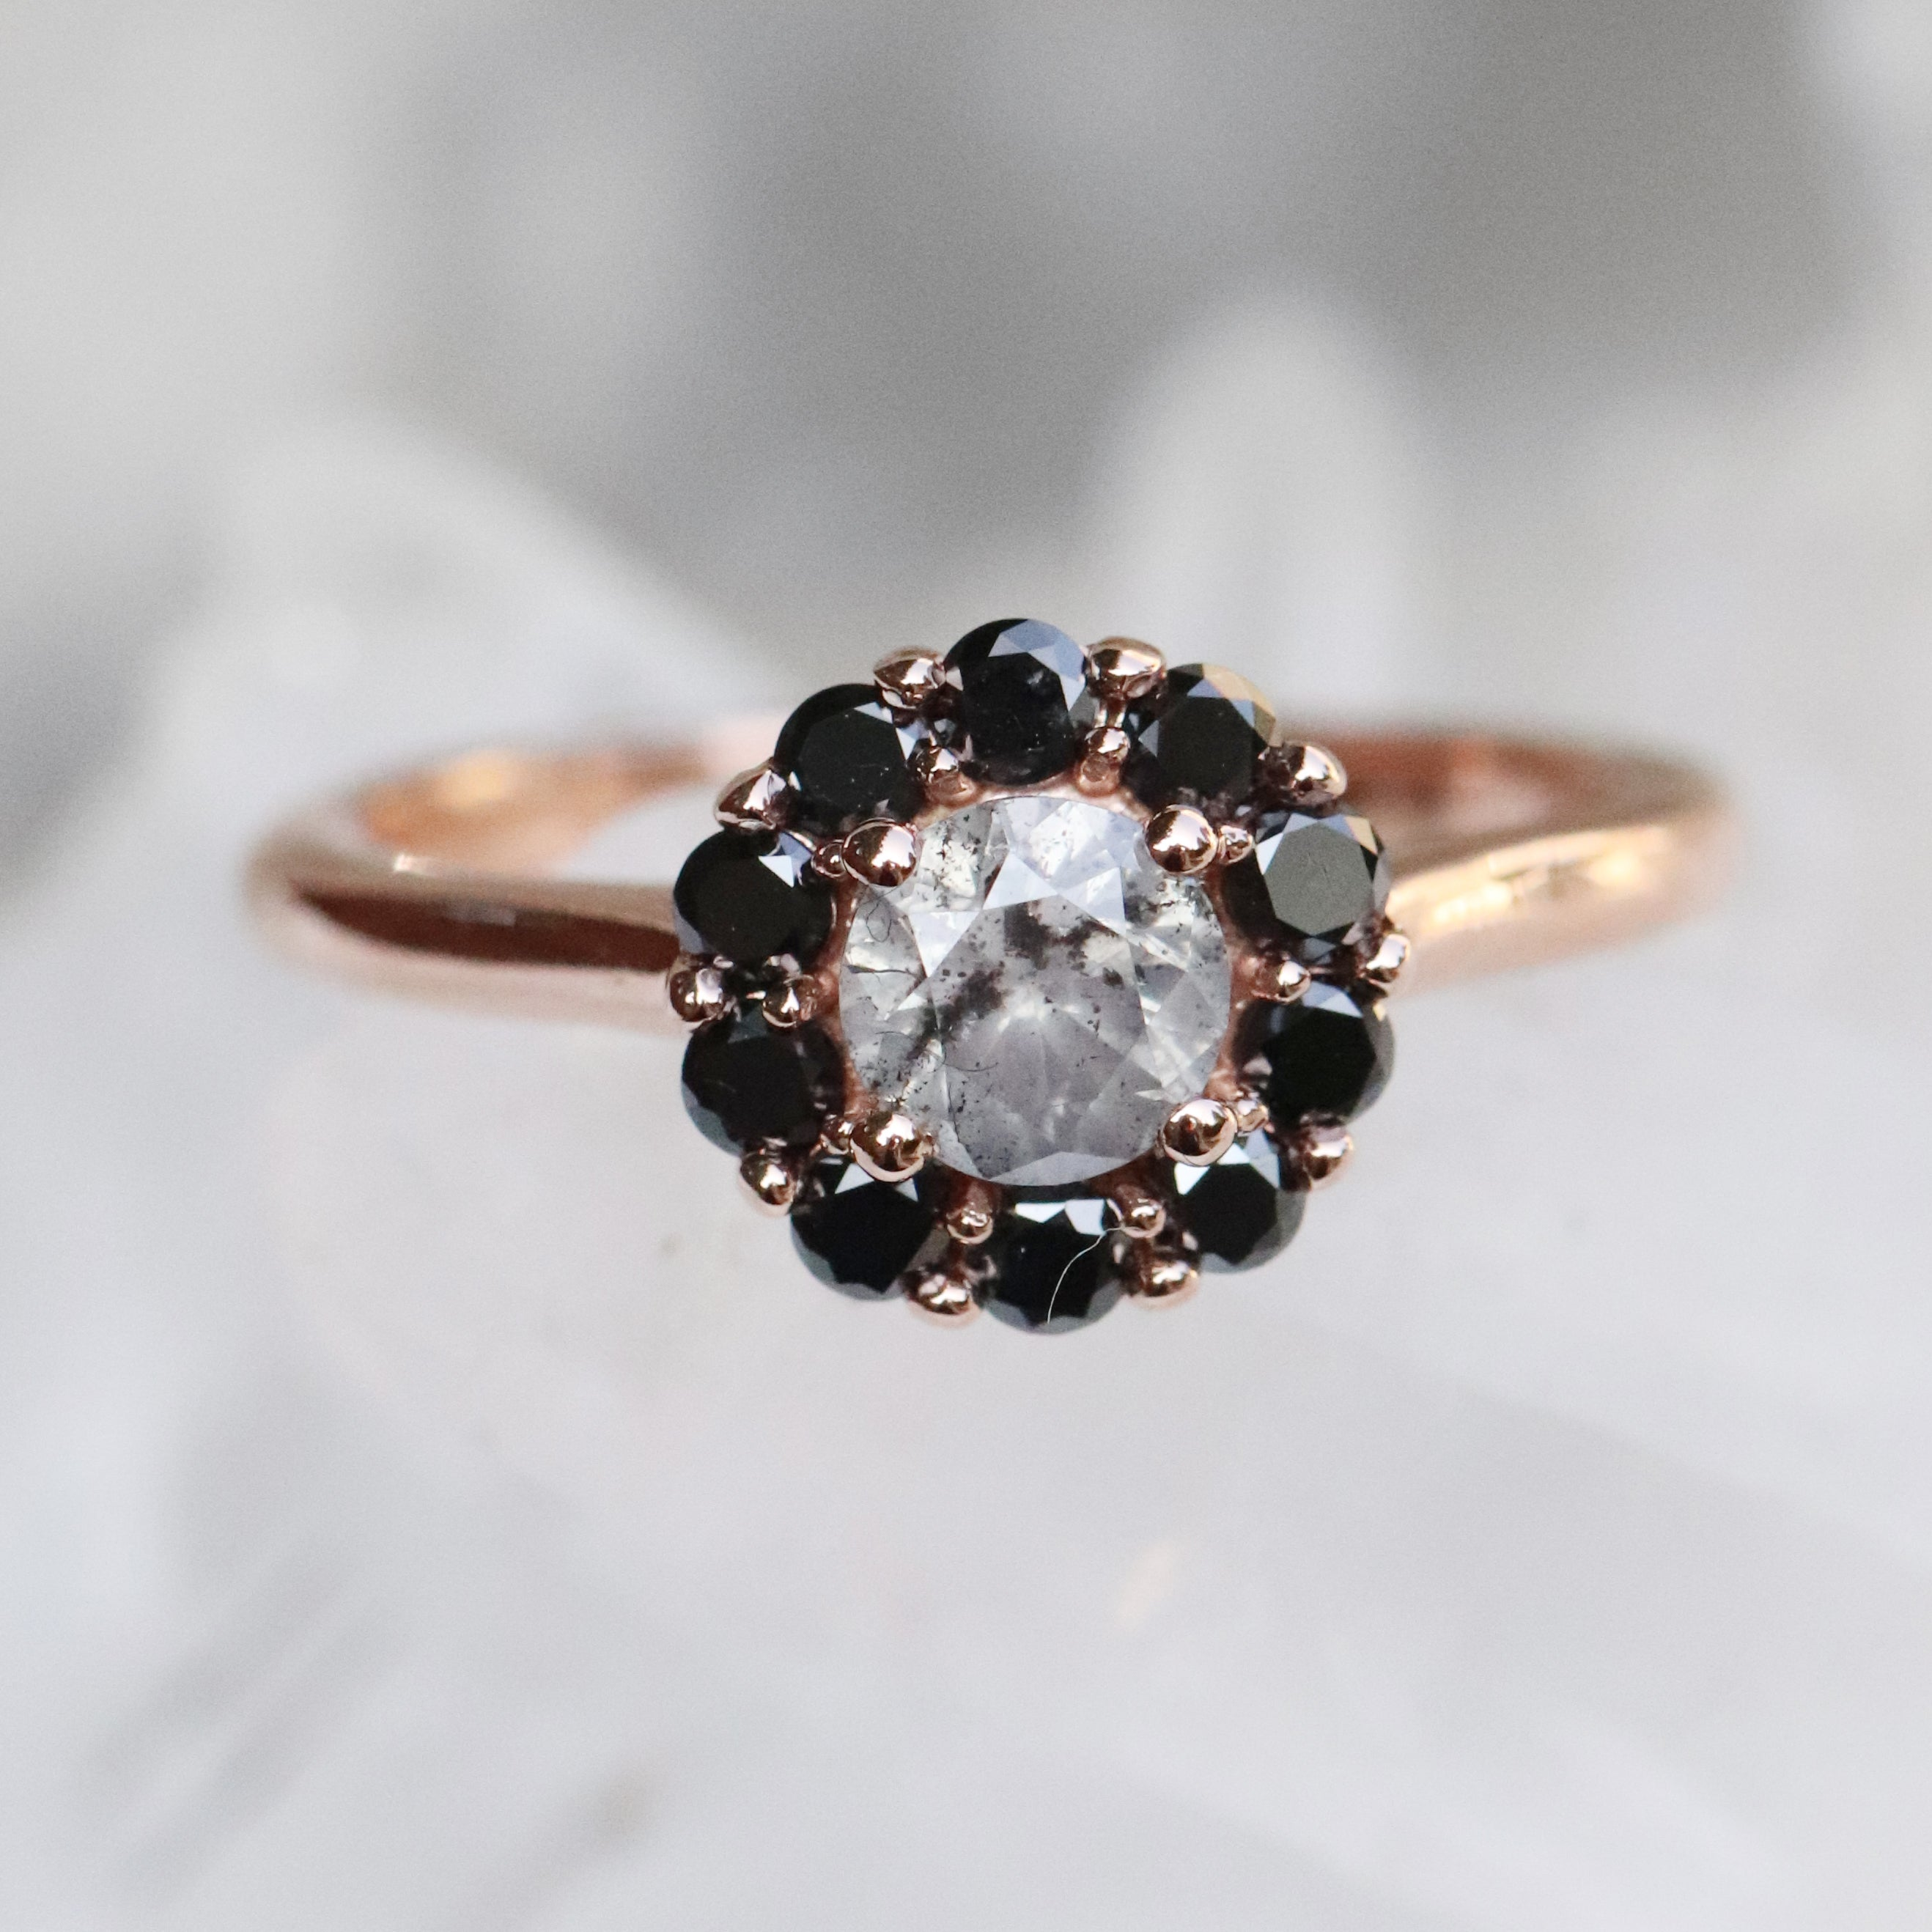 Magnolia Ring with a 1.05 ct Celestial Diamond and Black Diamond Accents in 14k Rose Gold - Ready to Size and Ship - Salt & Pepper Celestial Diamond Engagement Rings and Wedding Bands  by Midwinter Co.